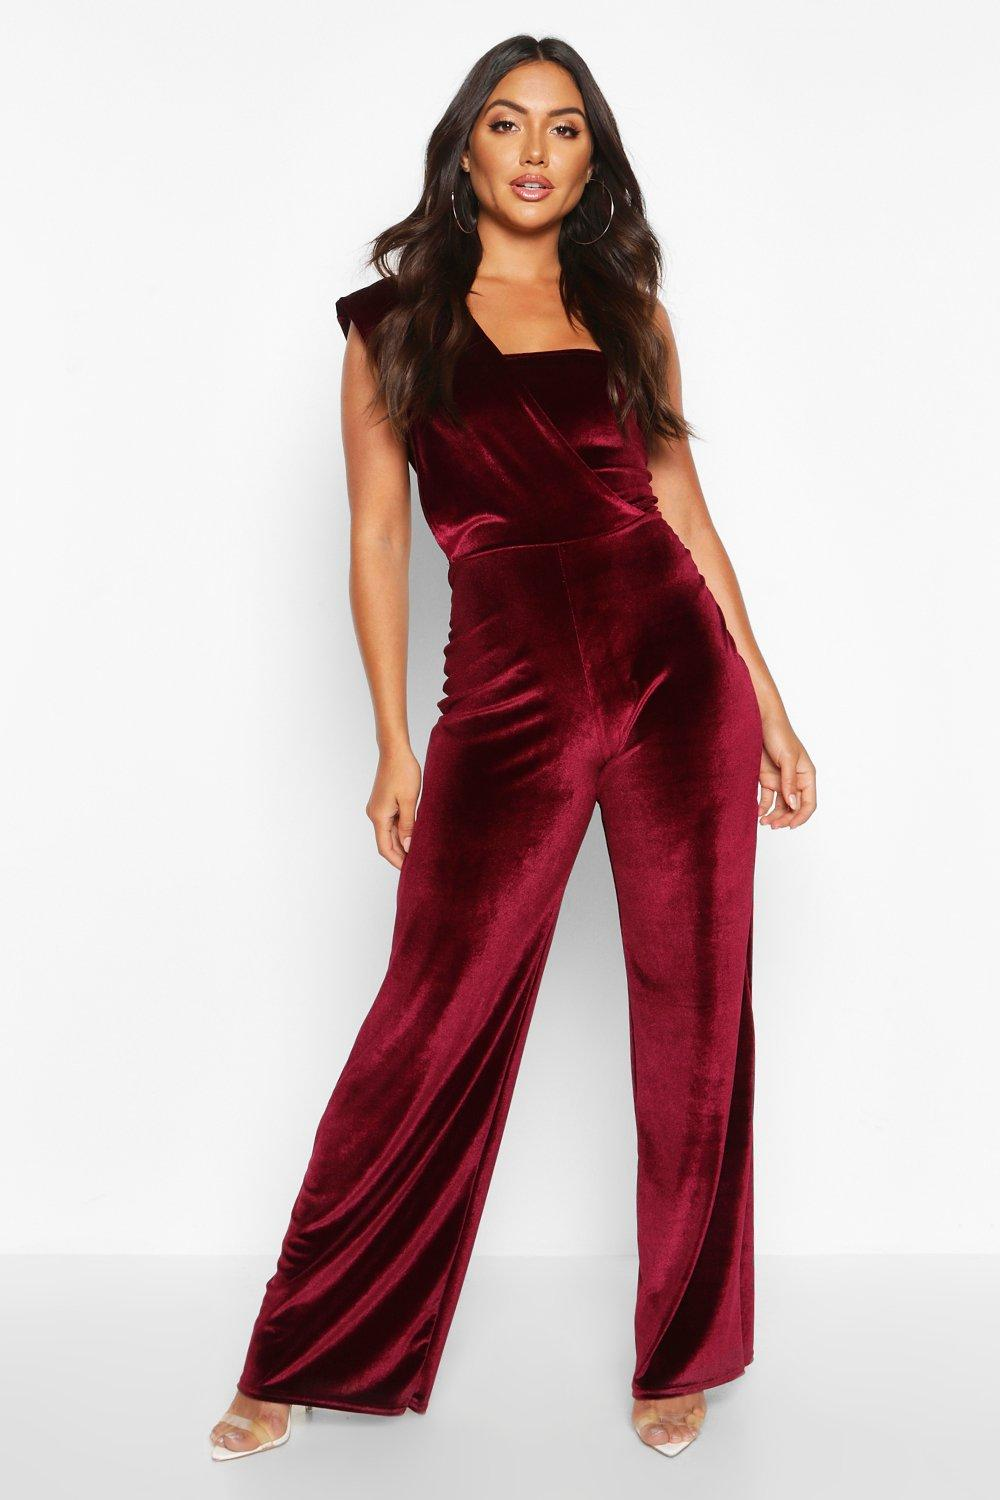 boohoo Womens Velvet Drape One Shoulder Jumpsuit - Red - 12, Red